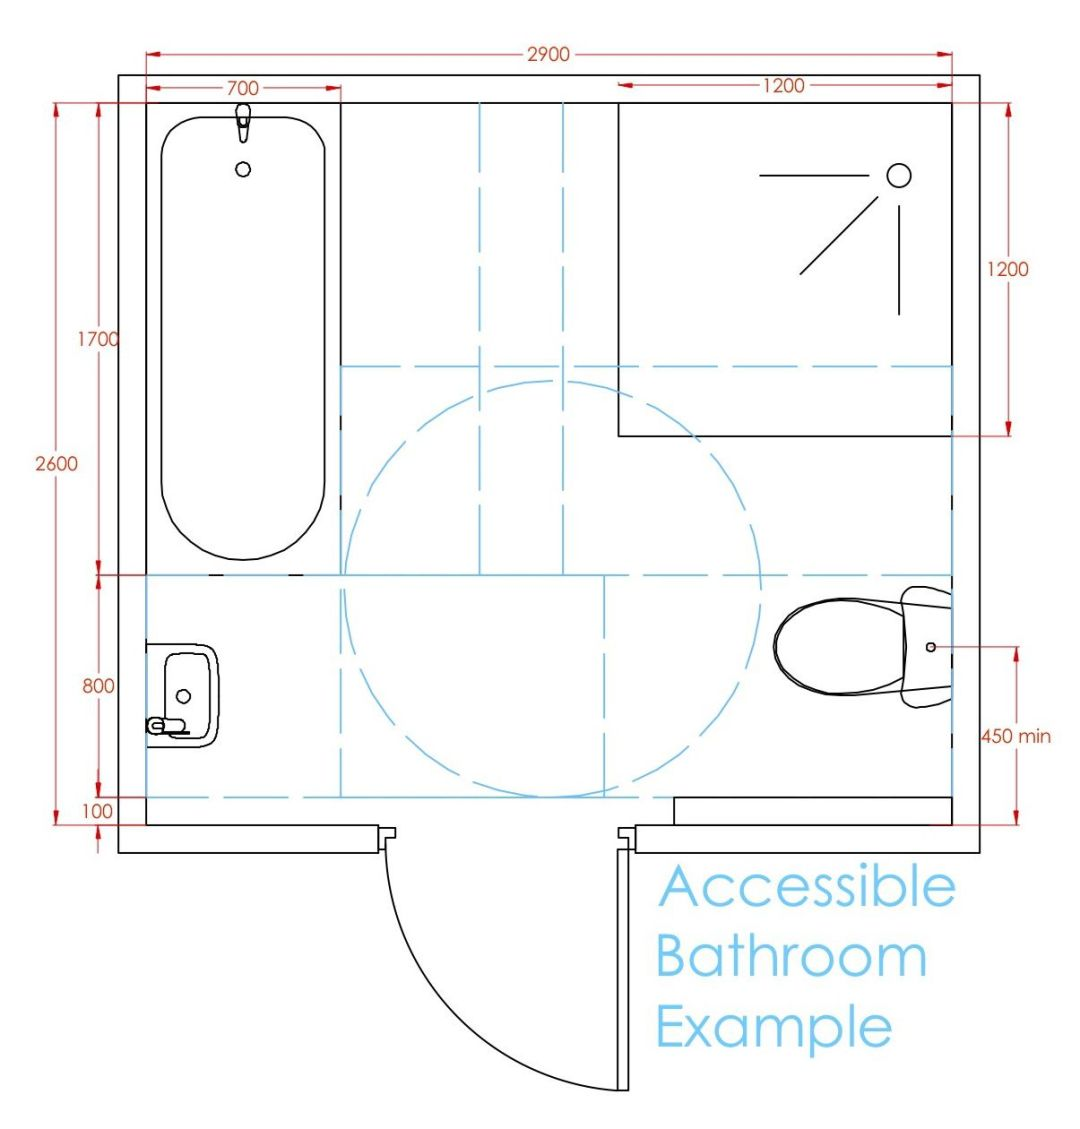 Accessible bathroom example